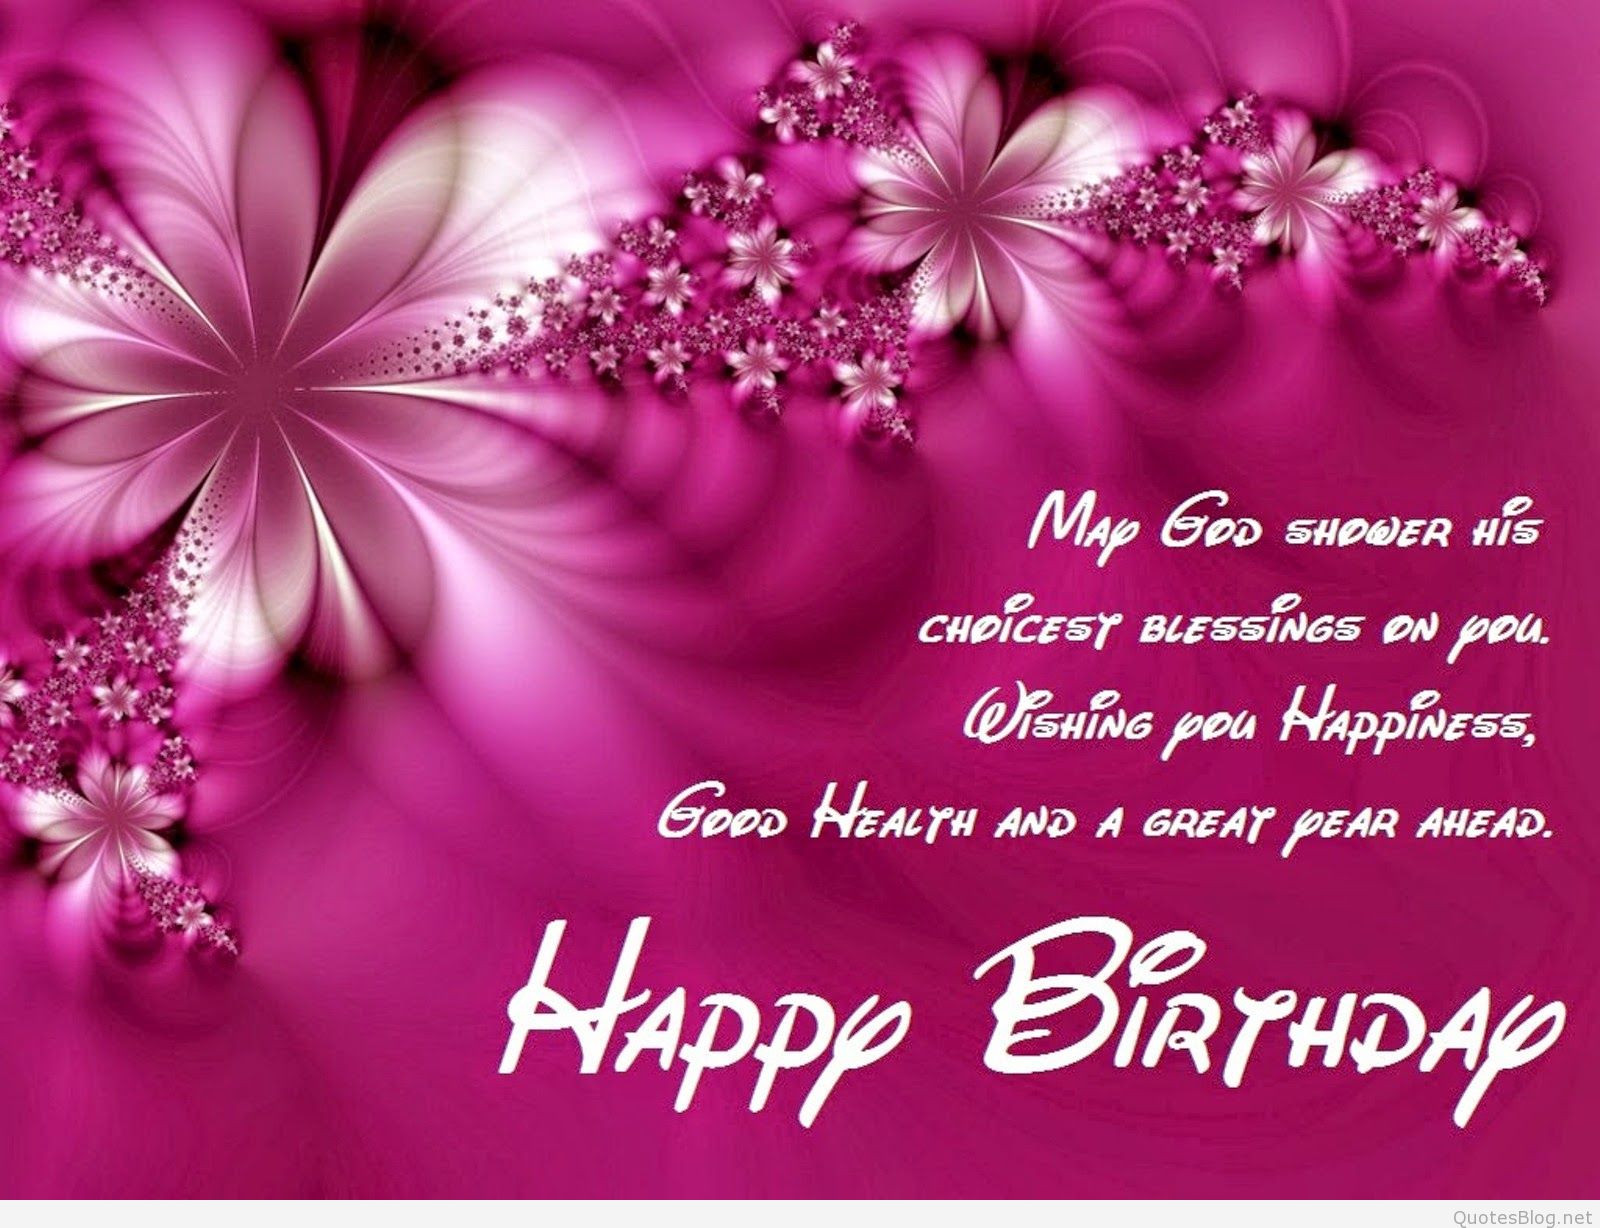 Best ideas about Happy Birthday Wishes For Facebook . Save or Pin Birthday Wishes Messages and Cards Now.